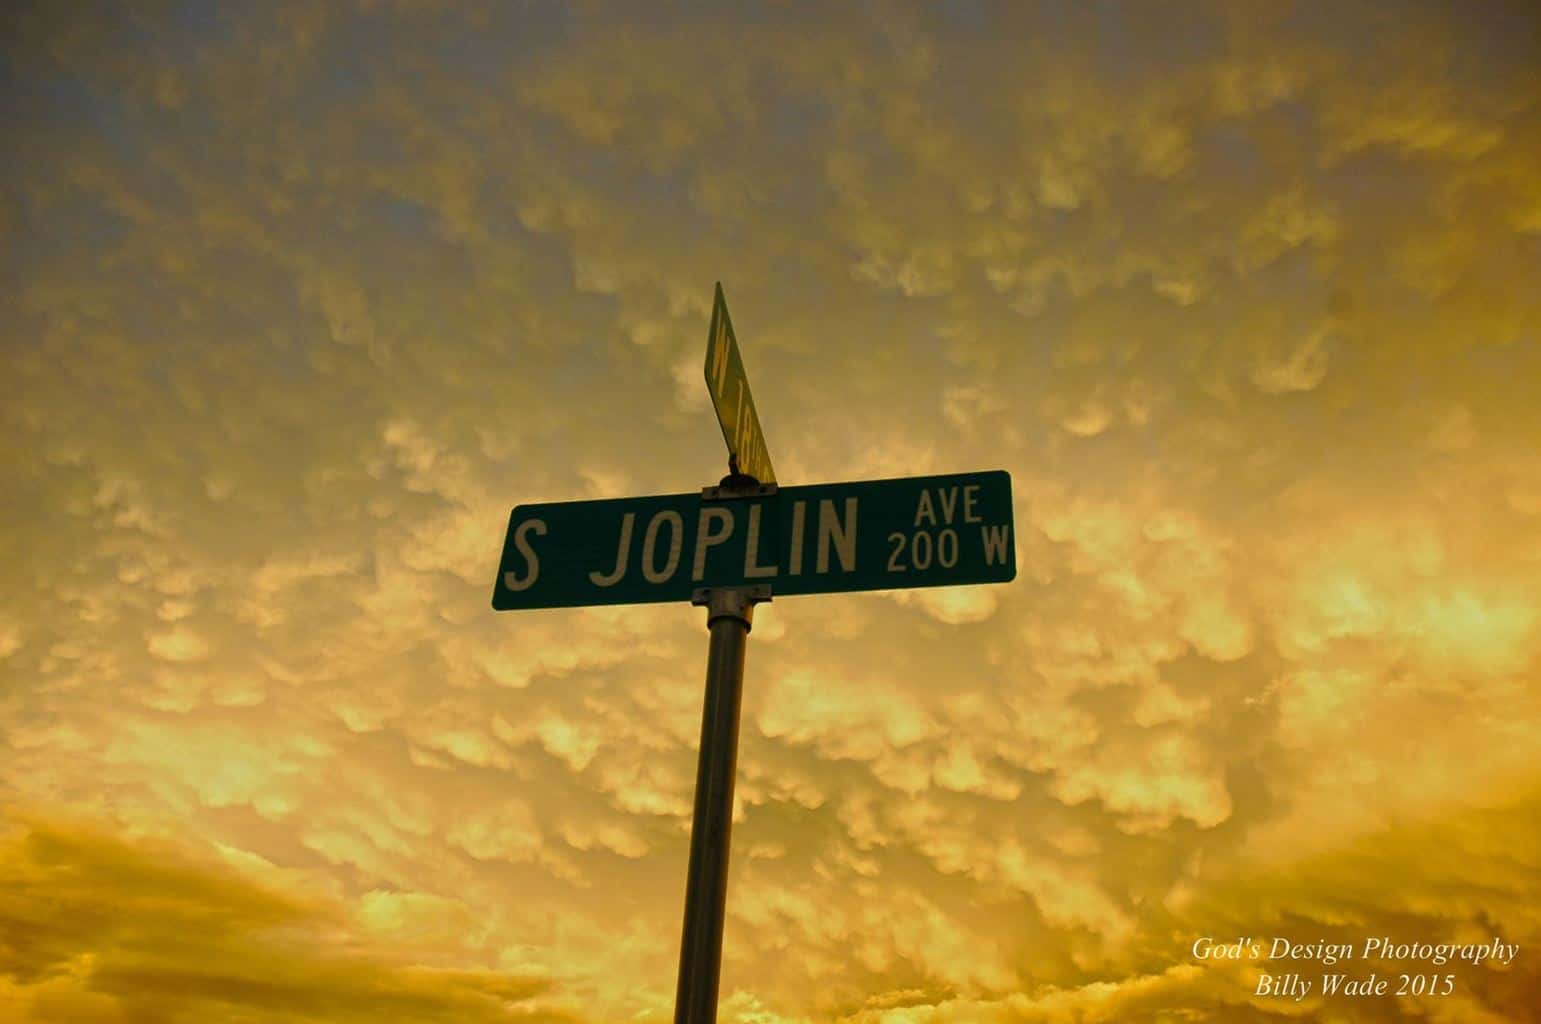 Amazing Mammatus Clouds this evening here back in Joplin, Taken Just minutes Ago!!!!!!!